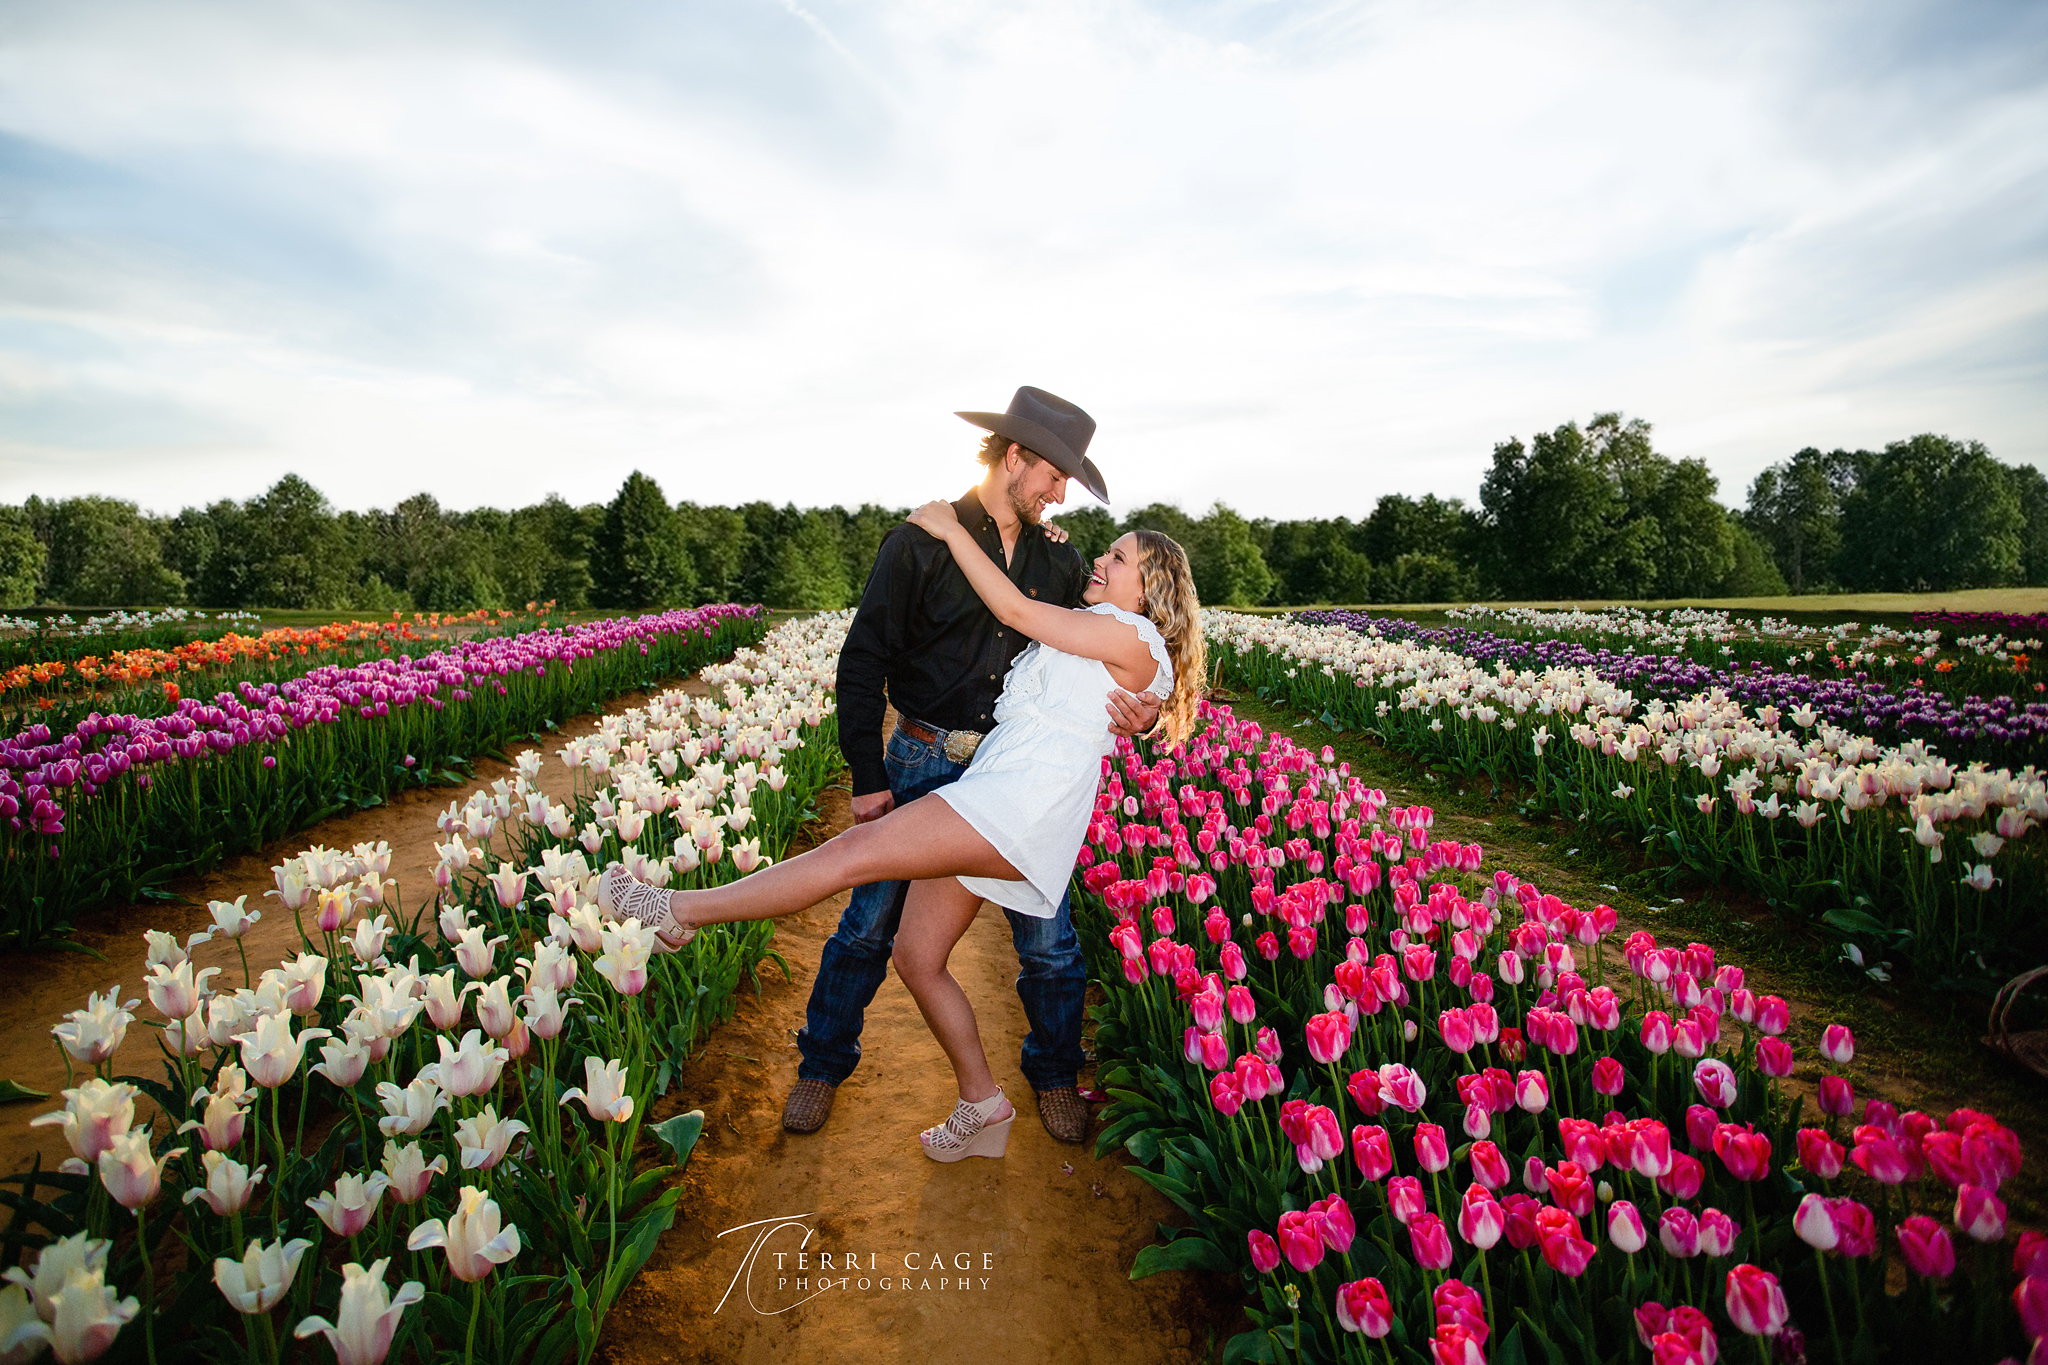 Proposal in Tulips